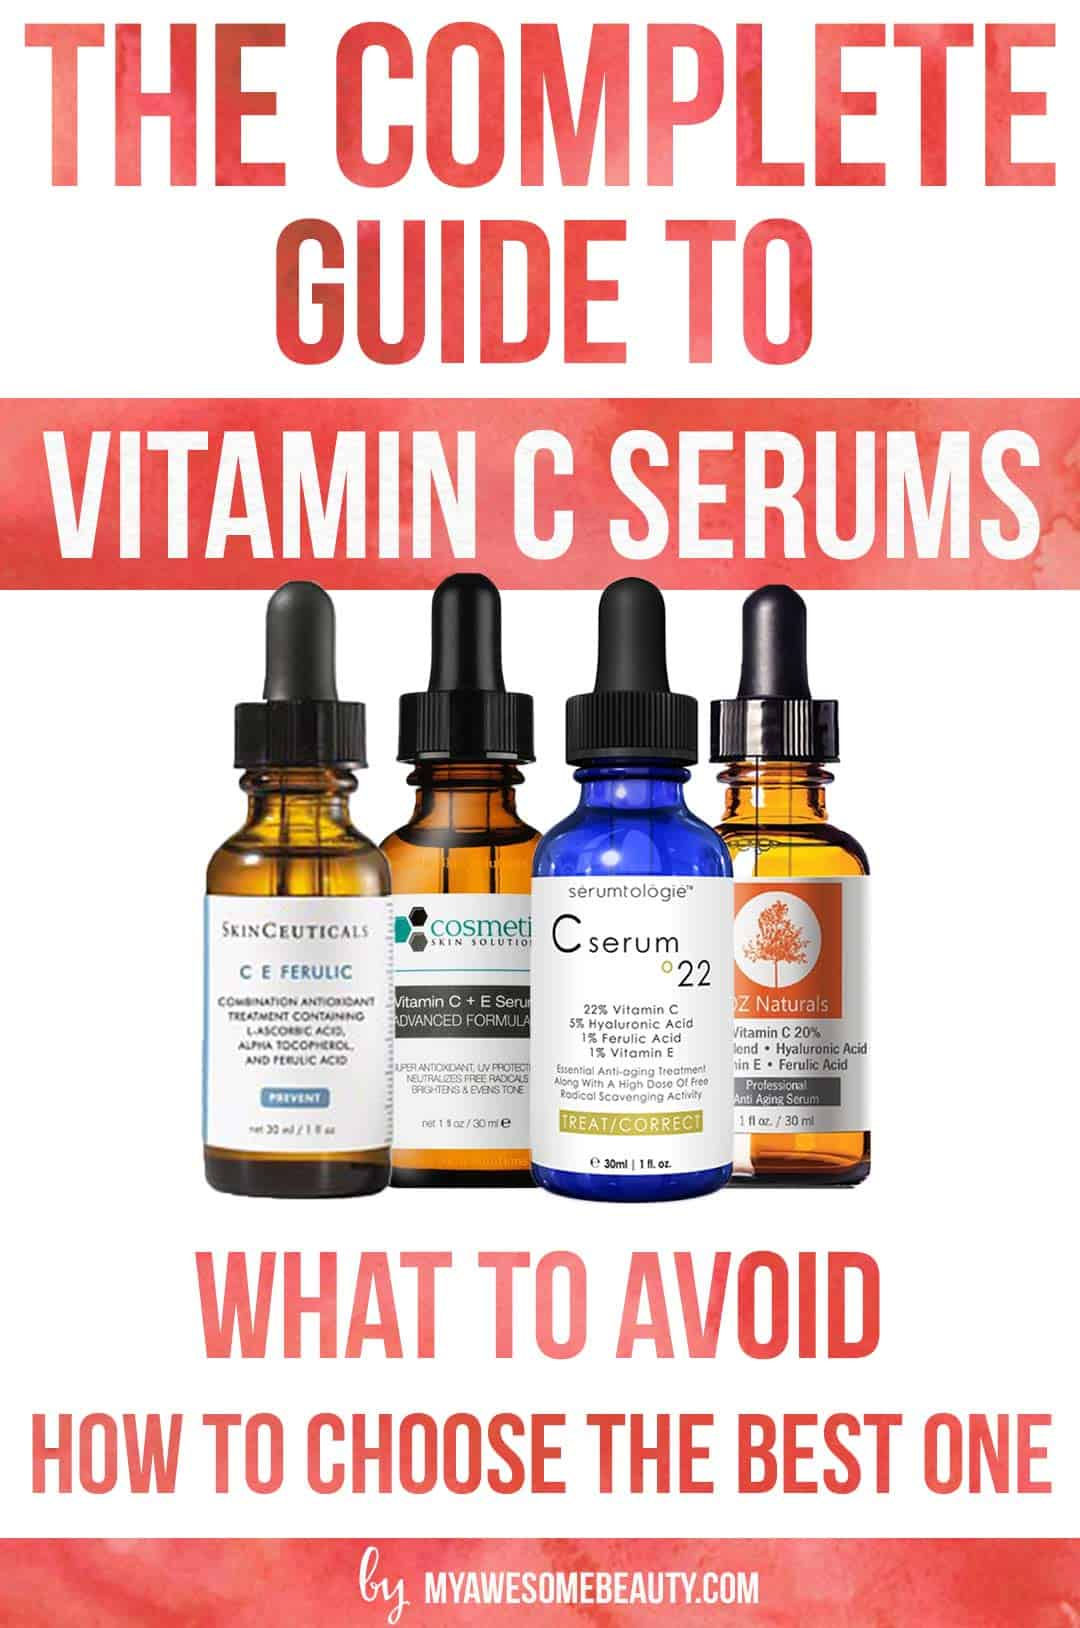 best_vitamin_c_serums_guide-1